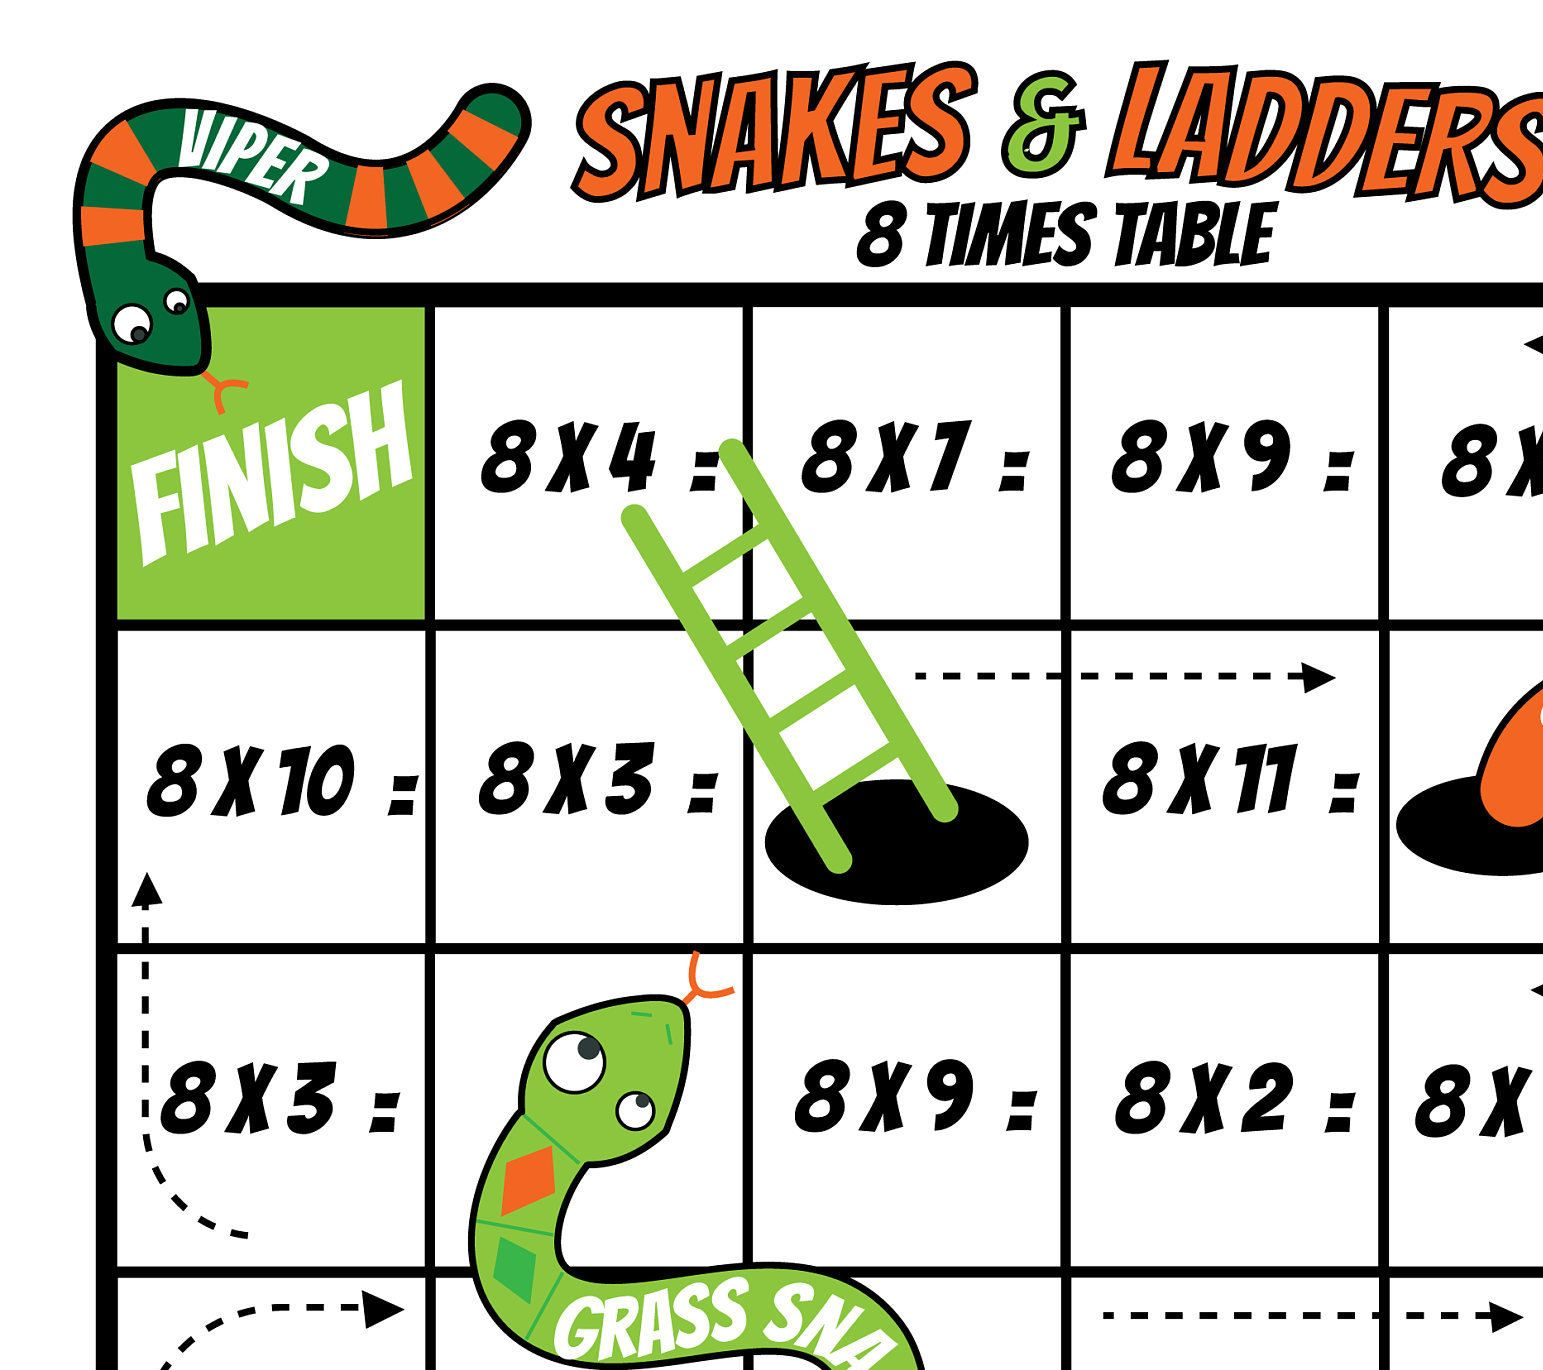 Snakes And Ladder 8 Times Table Board Game Kids Printable Games